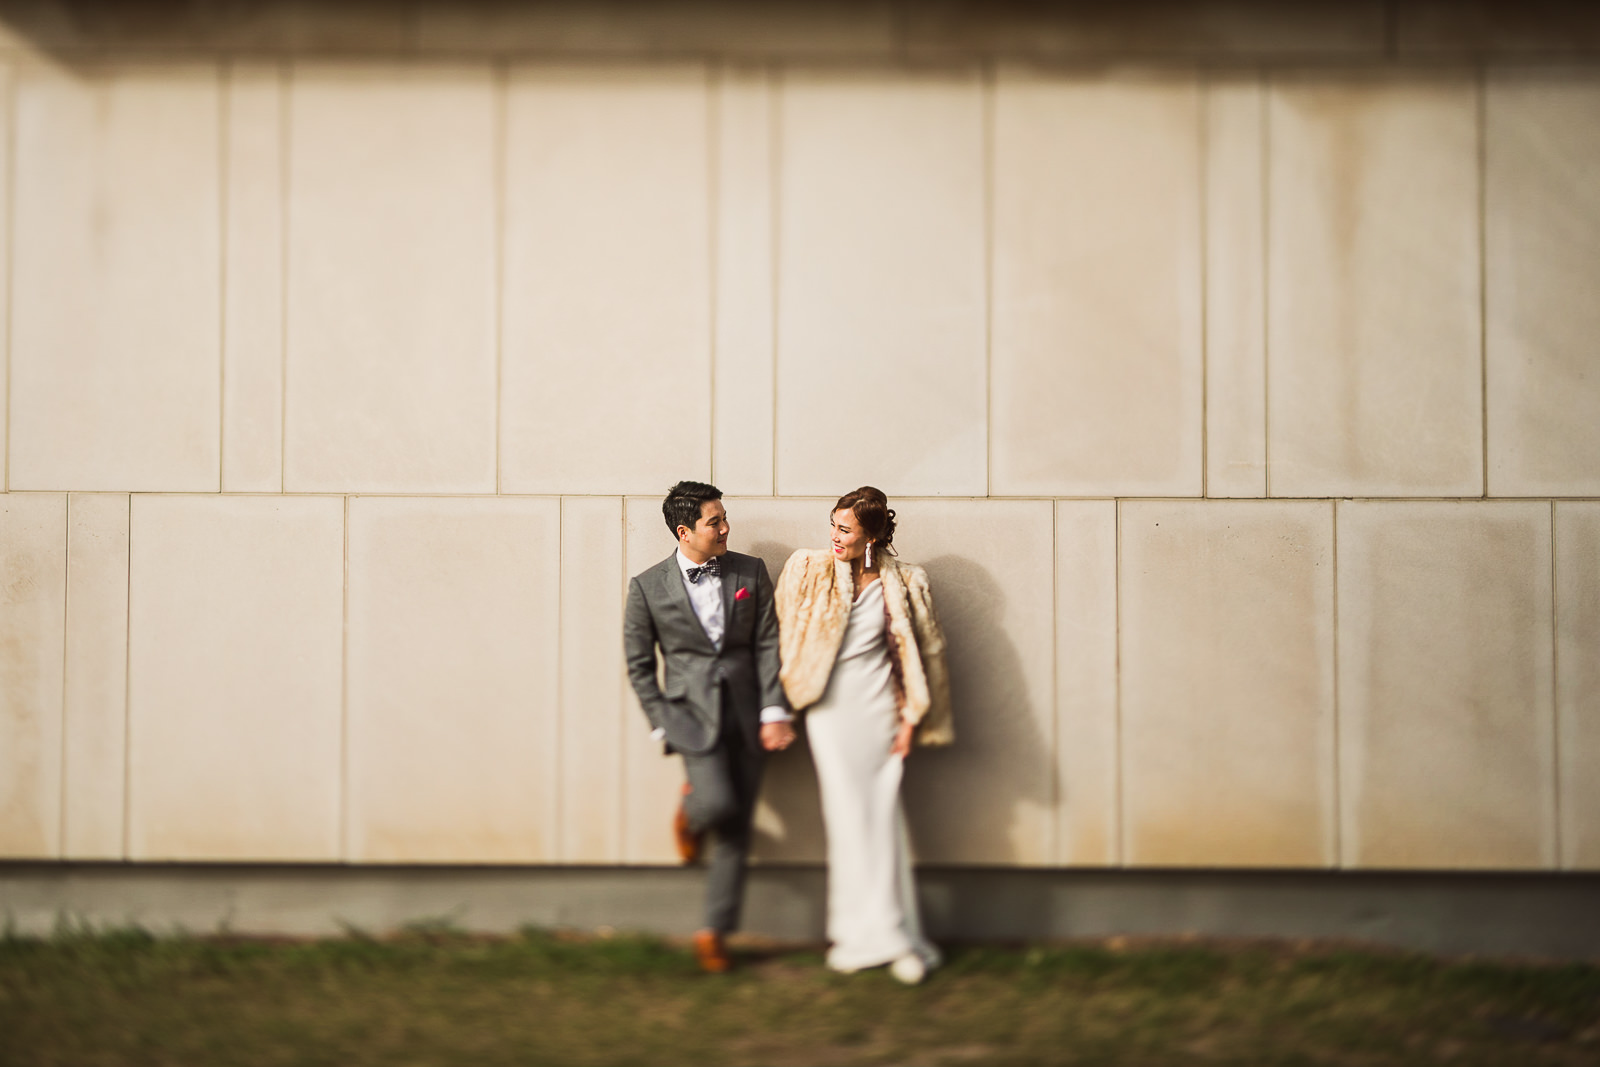 19 chicago wedding photos - Rebecca + Doha // Wedding Photos at Room 1520 Chicago